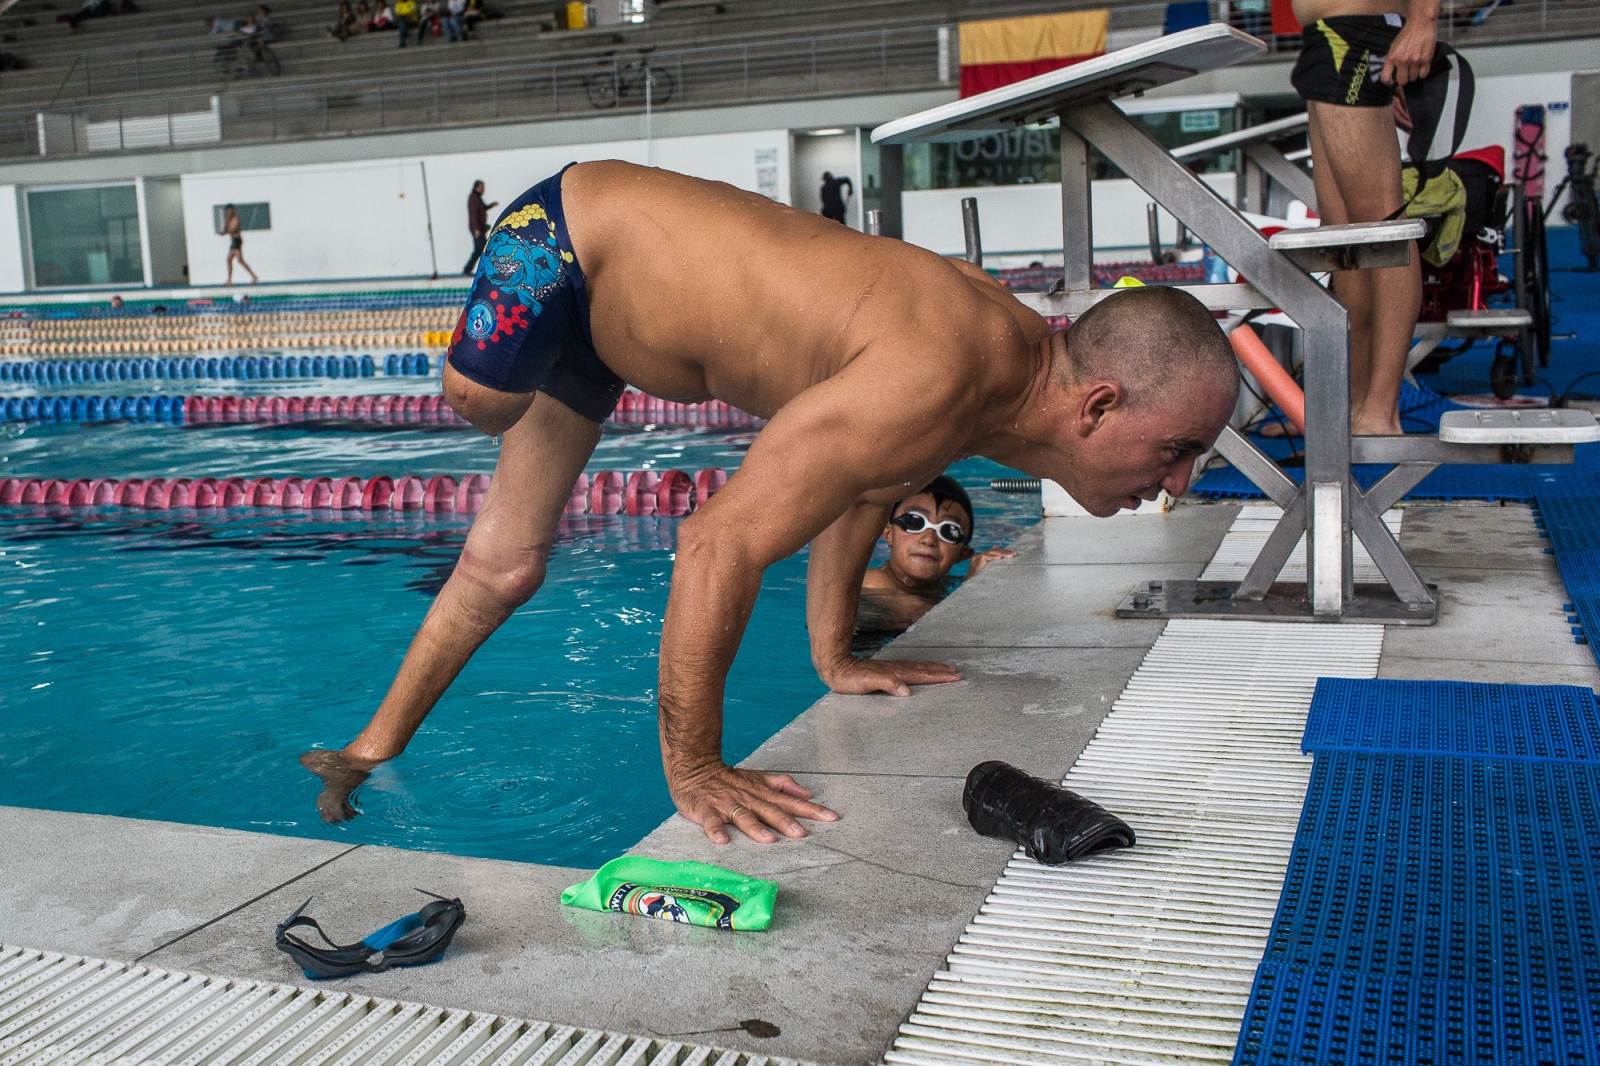 Moises Fuentes Garcia, 41, does pushovers on the border of a pool after a training session at the Simon Bolivar Aquatic Complex, Bogotá, 3rd June, 2016.